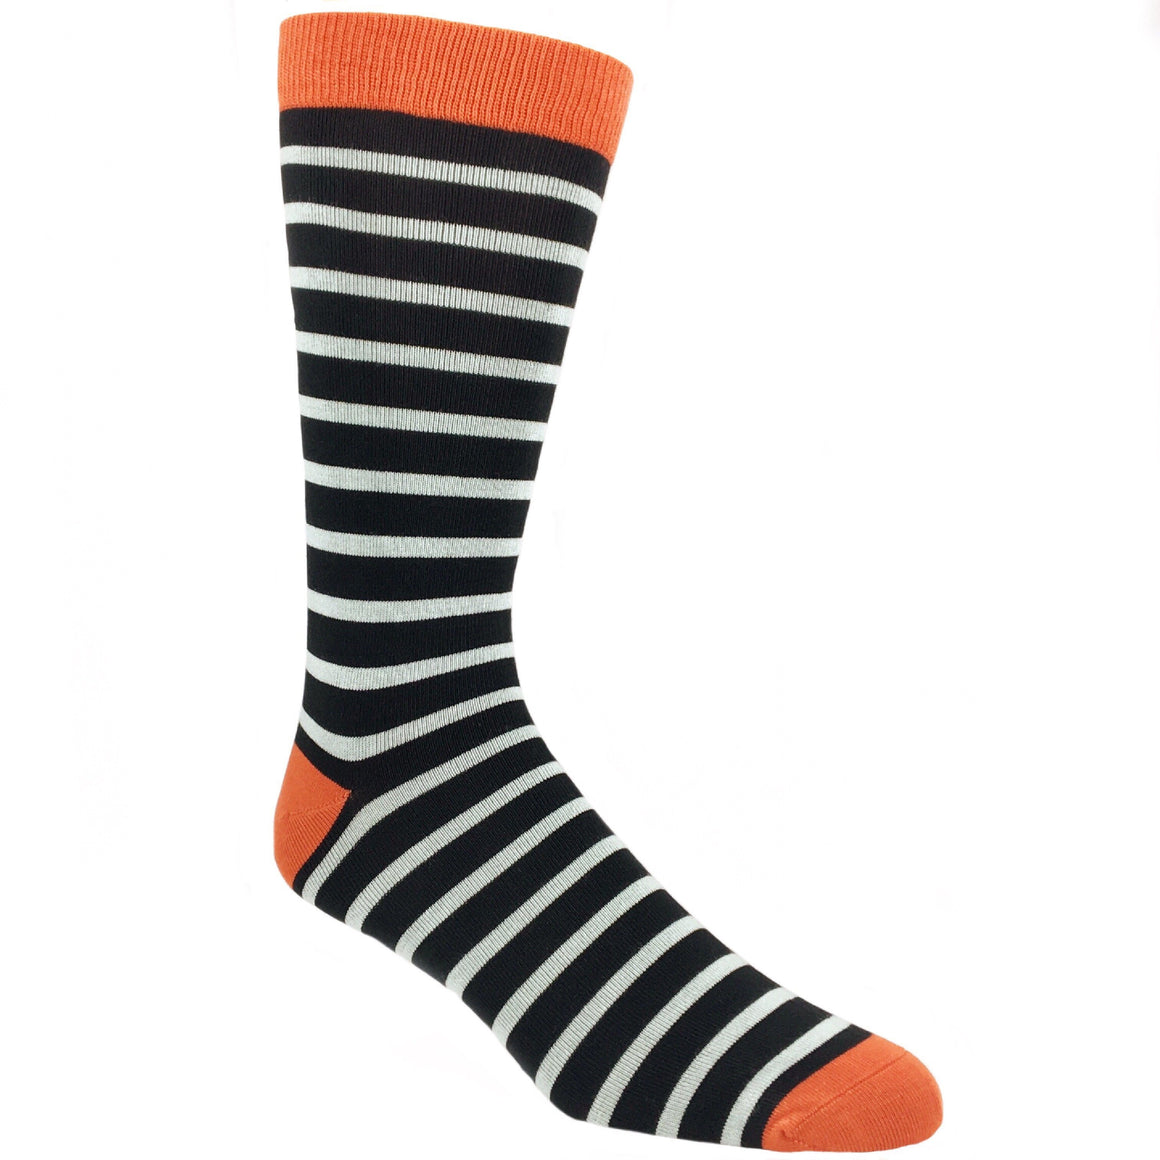 Black and Grey Sailor Striped Bamboo Socks by SockSmith - The Sock Spot